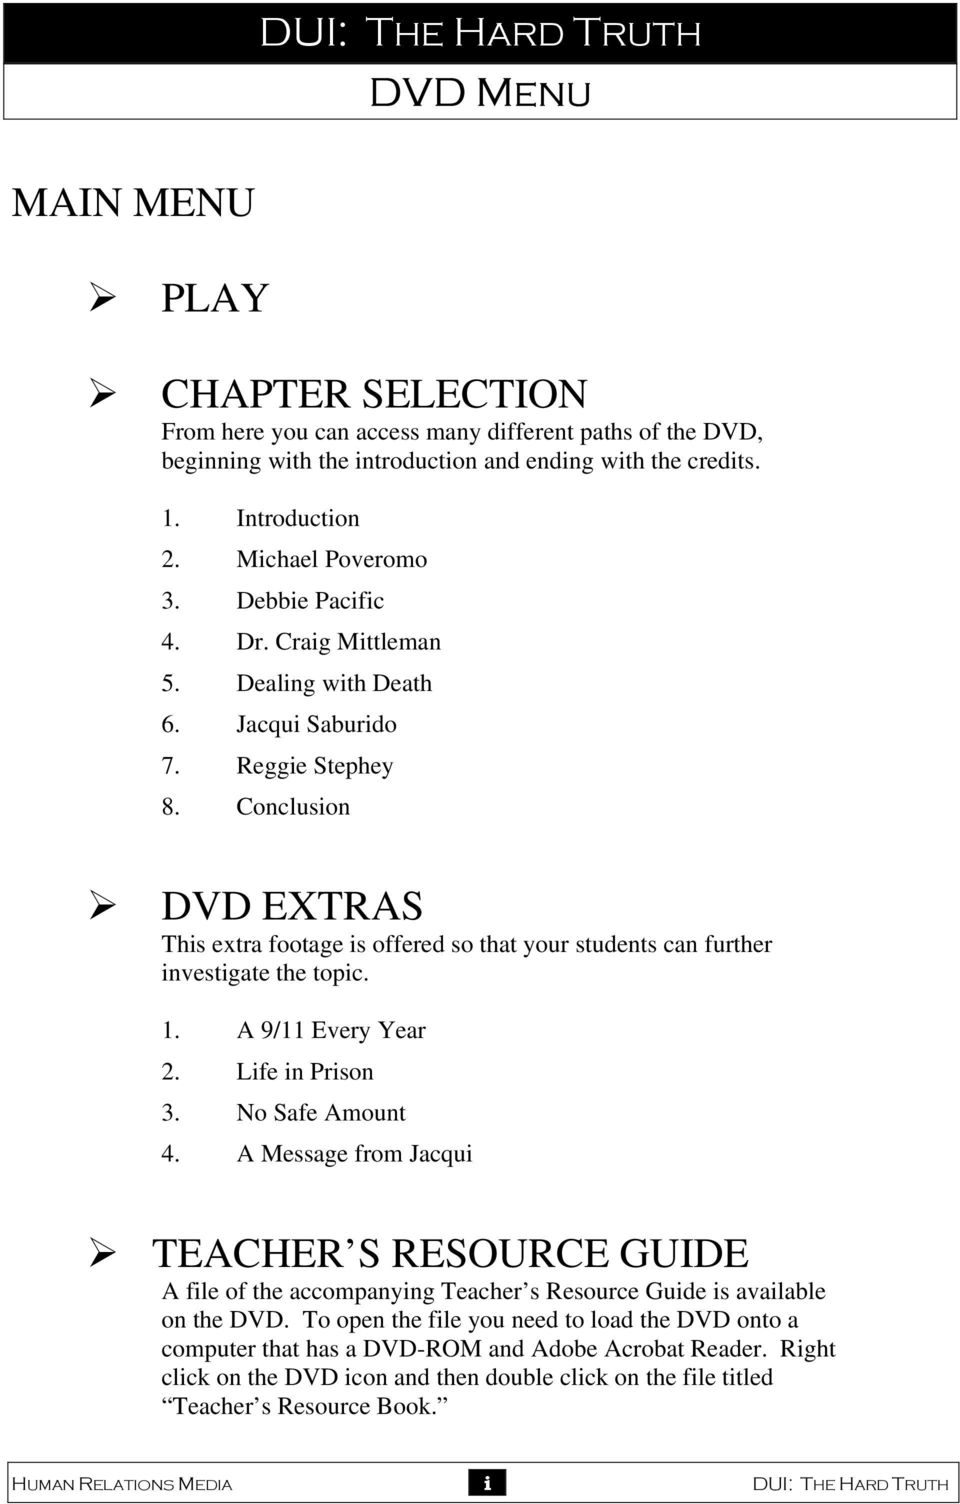 Conclusion DVD EXTRAS This extra footage is offered so that your students can further investigate the topic. 1. A 9/11 Every Year 2. Life in Prison 3. No Safe Amount 4.